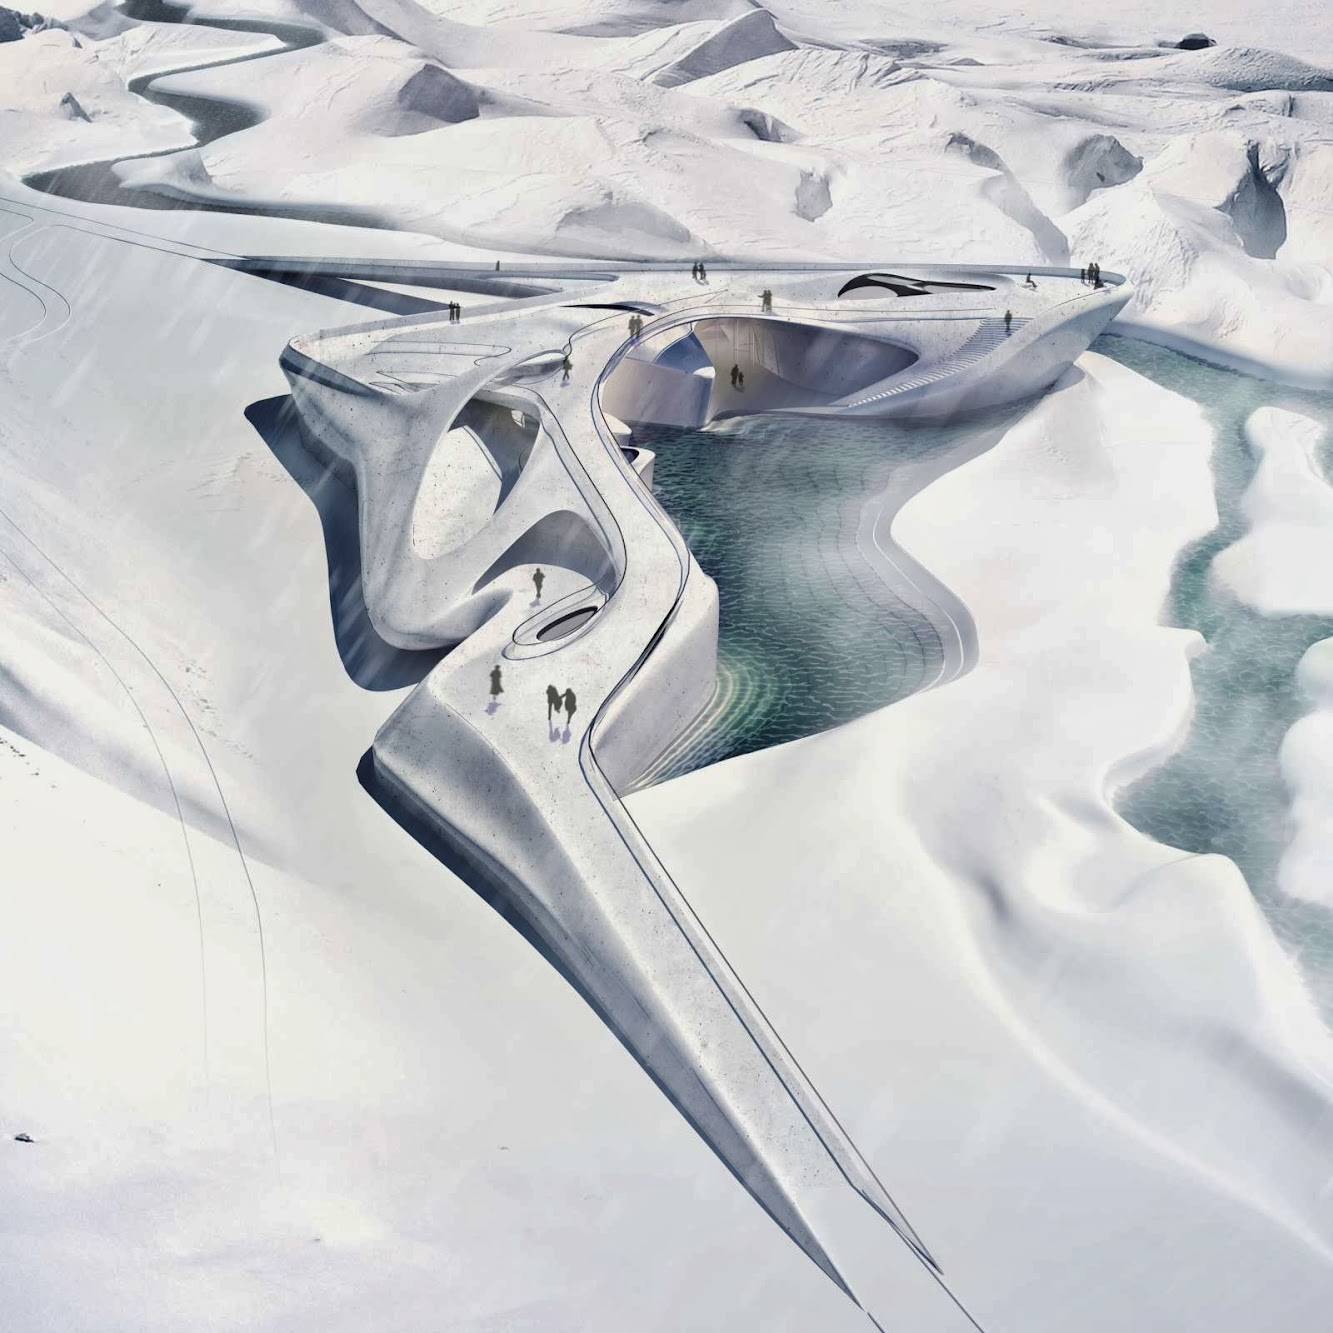 Center for Glaciology by Matthias Sütterlin